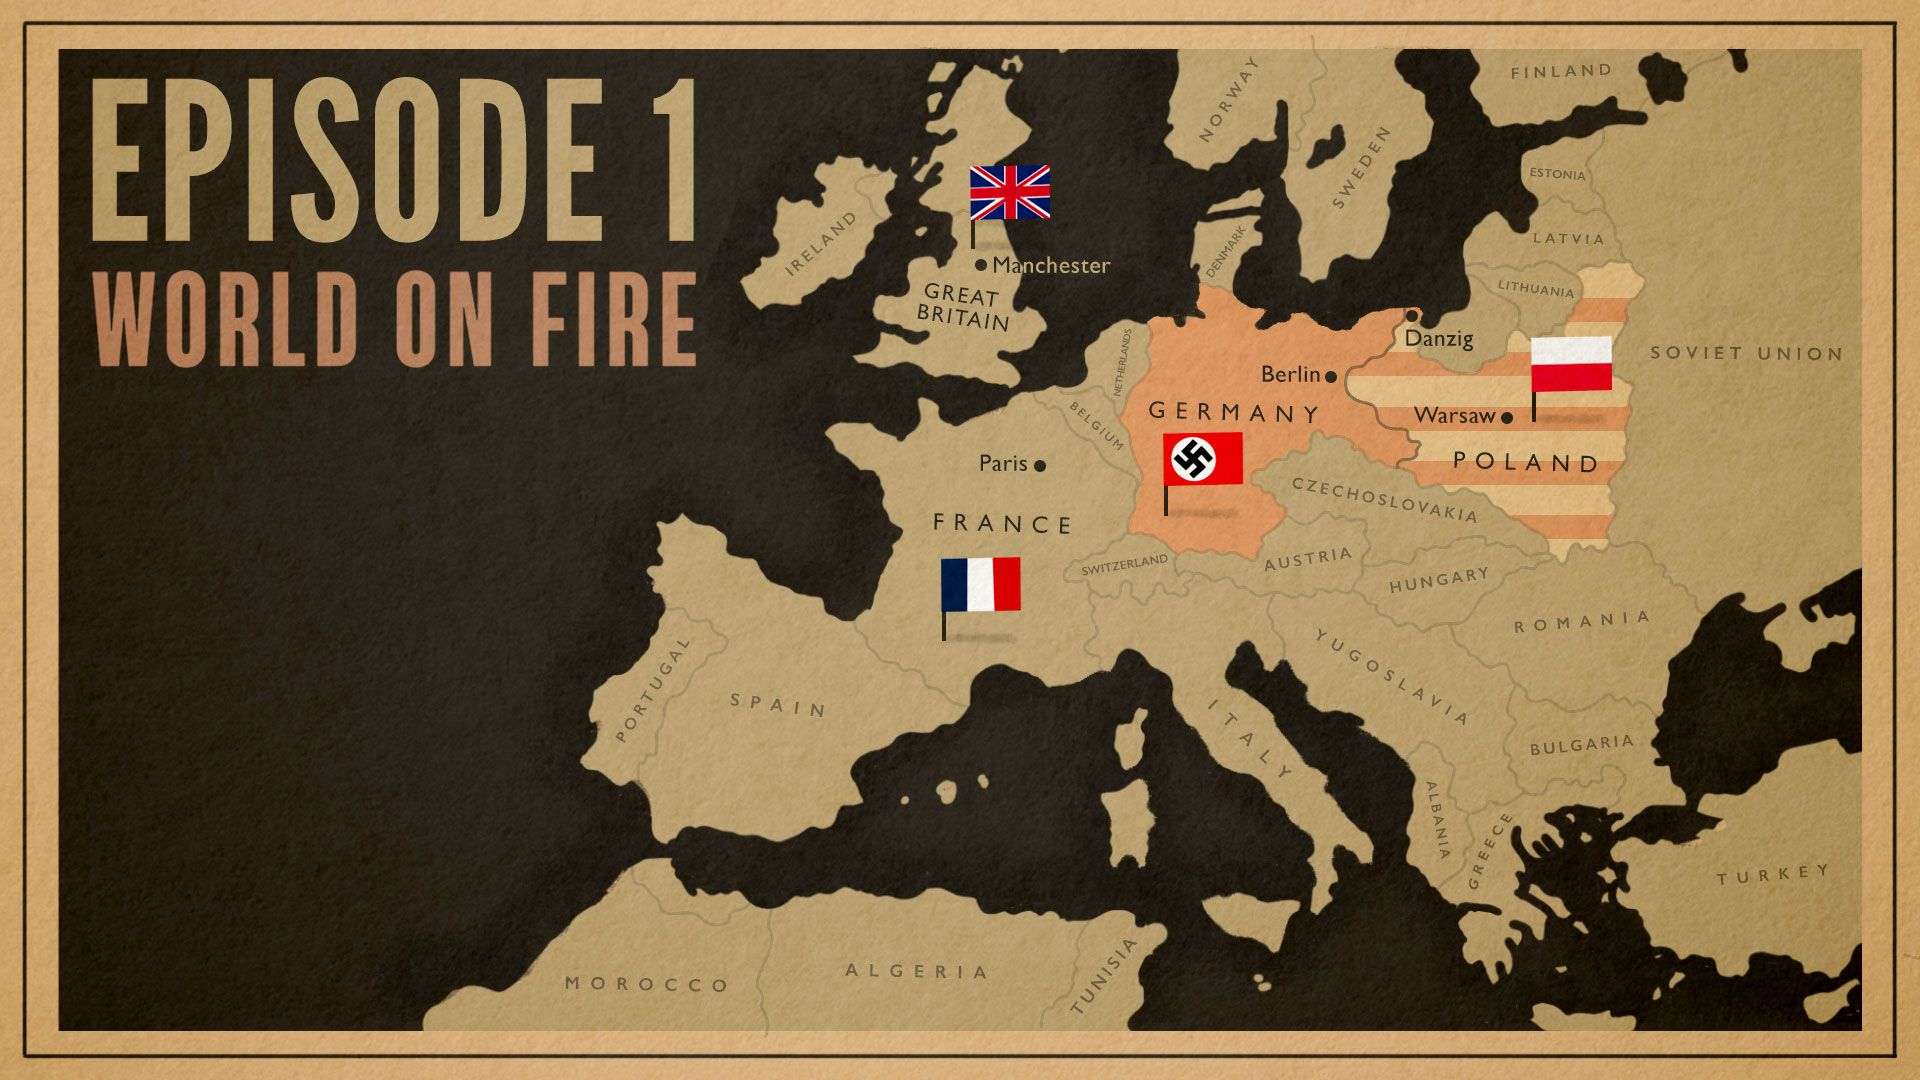 World on Fire Episode 1 map of Europe 1939